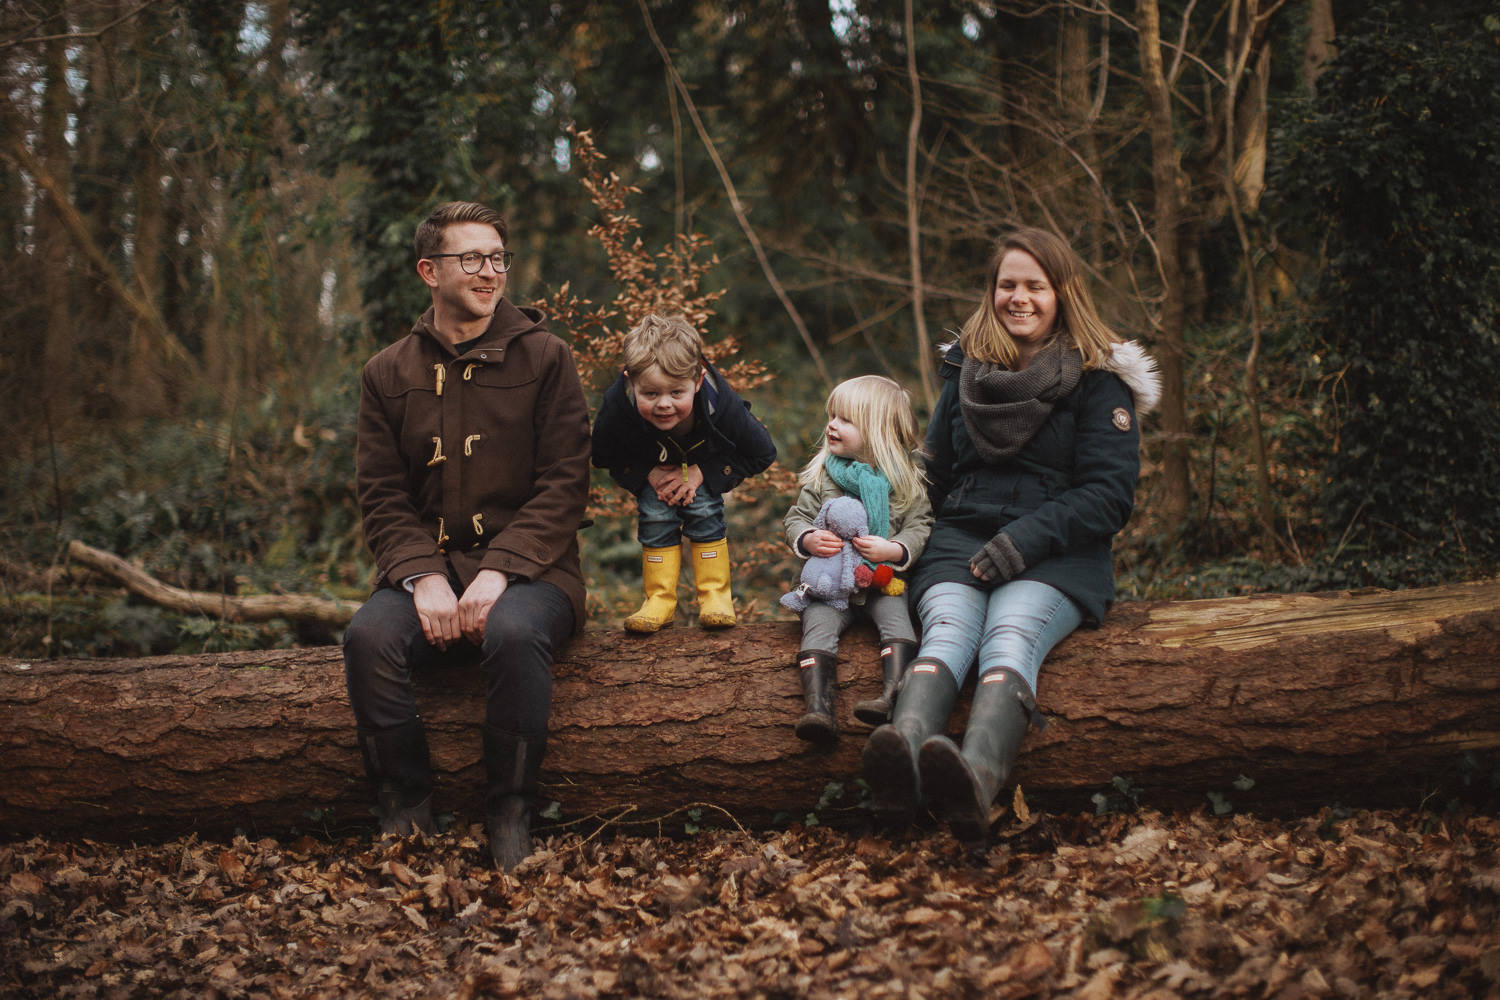 fun family photo in the woods